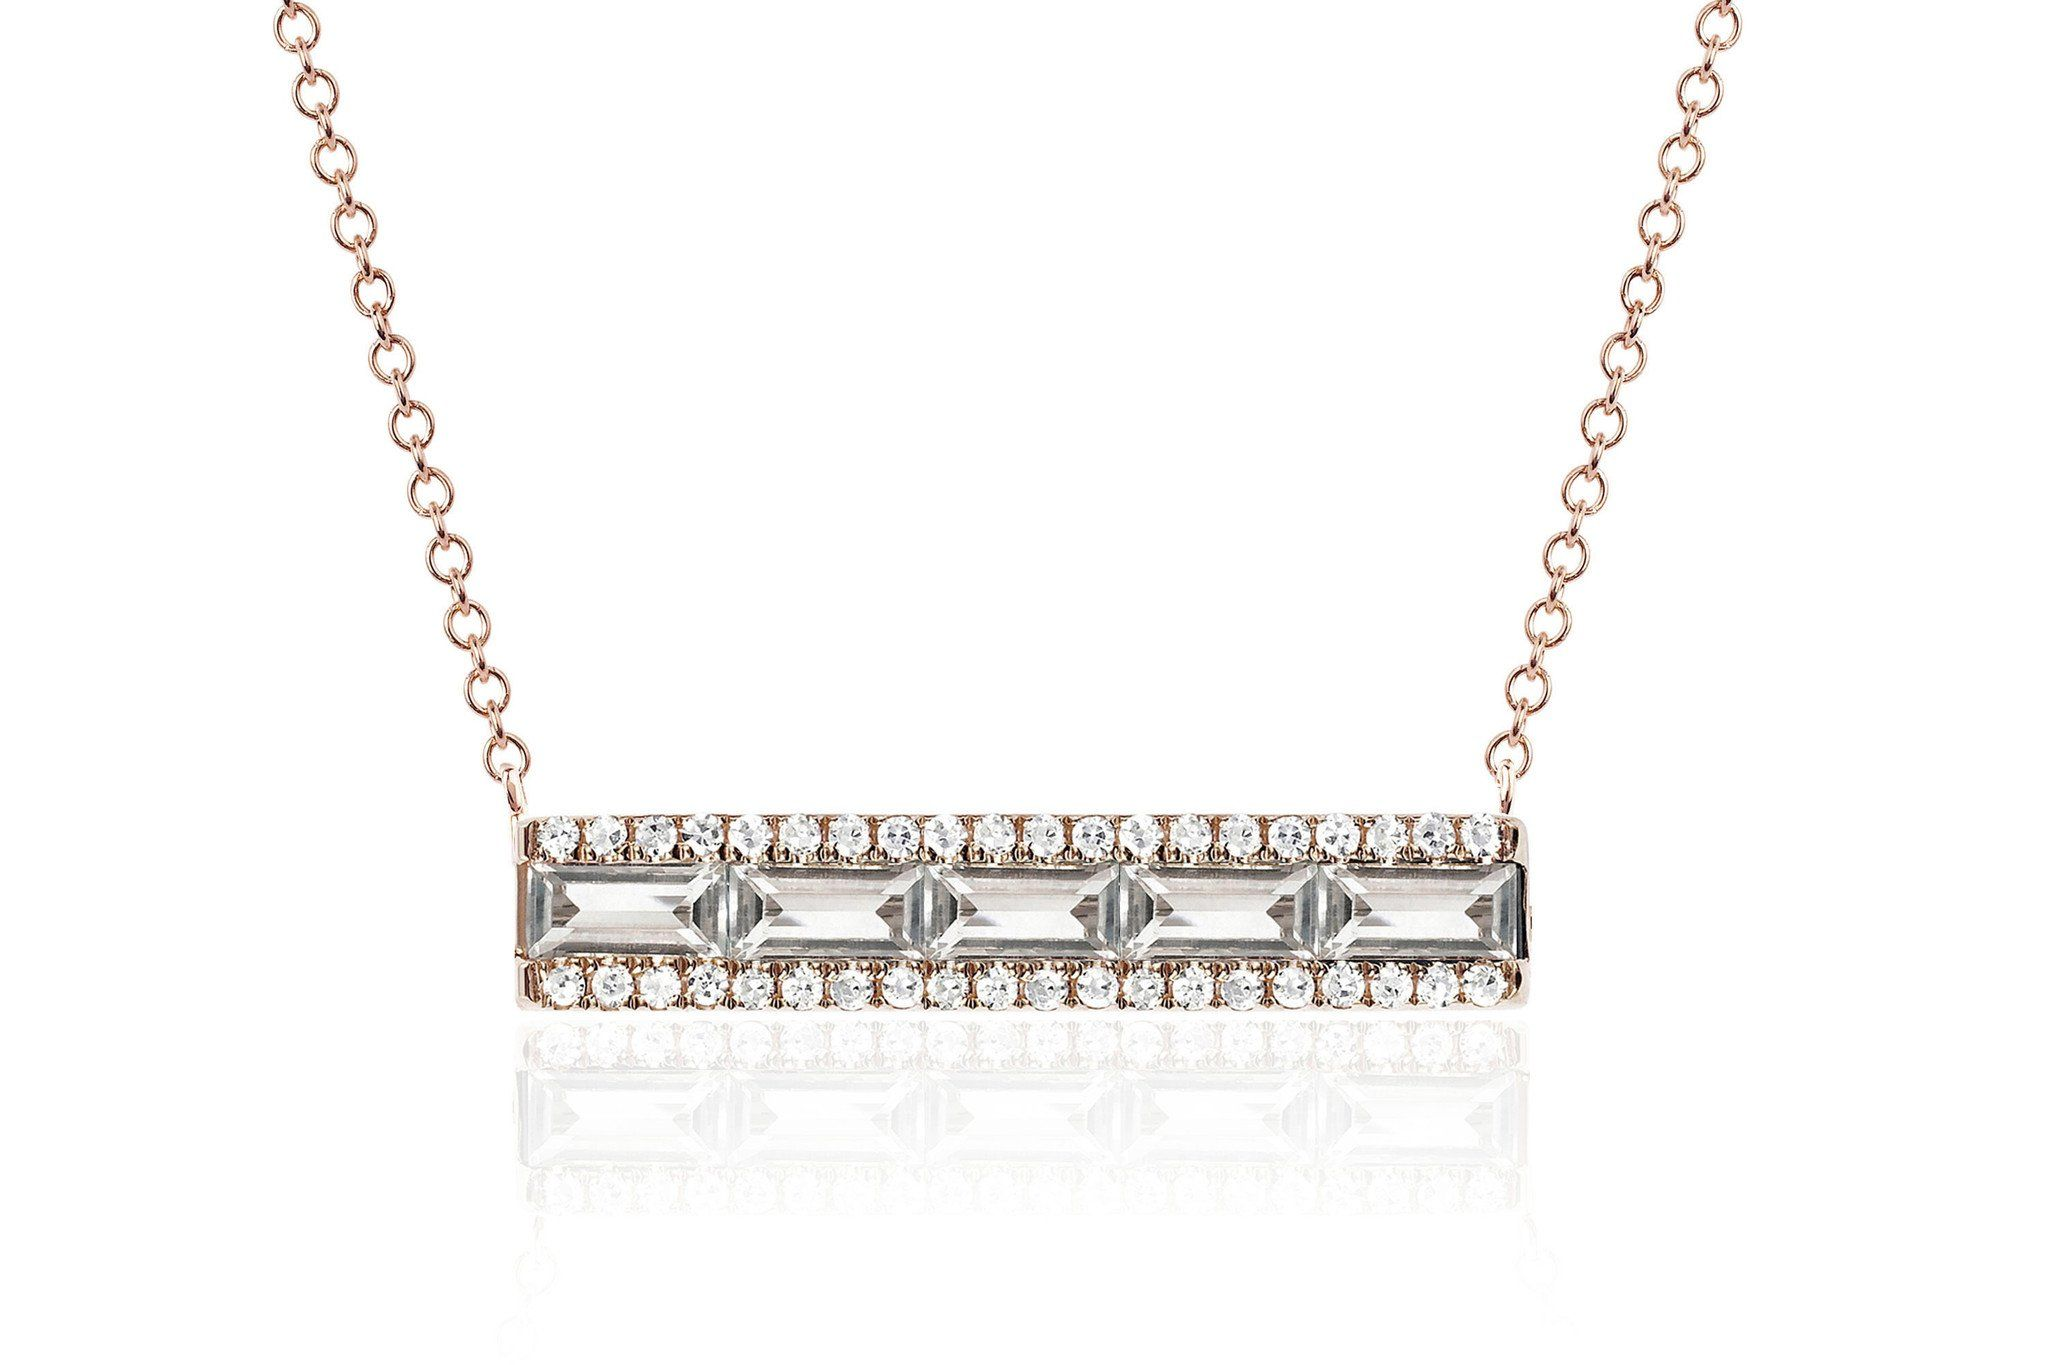 EF Collection White Topaz Baguette Mini Bar Necklace in Metallic Gold 1gRXs7O7tQ